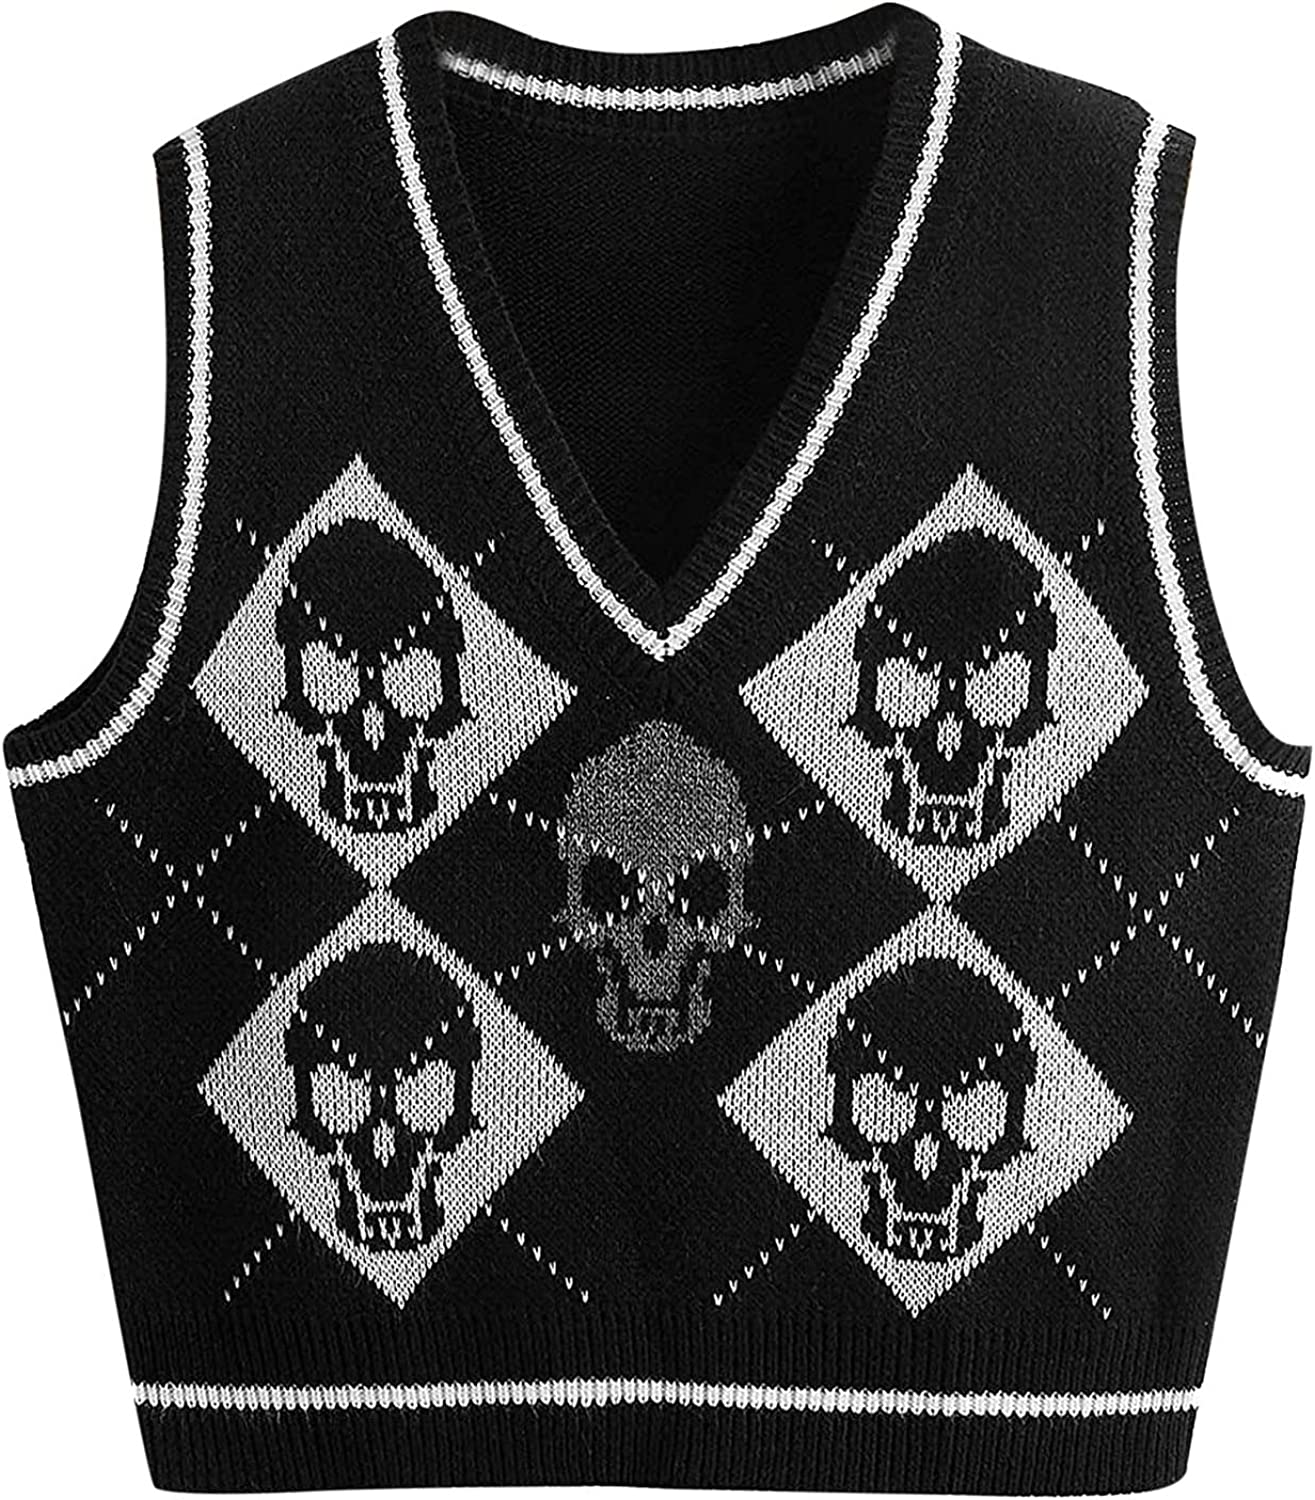 PAPIYON Halloween Sweater Vest for Women Sleeveless Skull Shirts Casual Knitted Sweater V Neck Pullover Sweatshirt